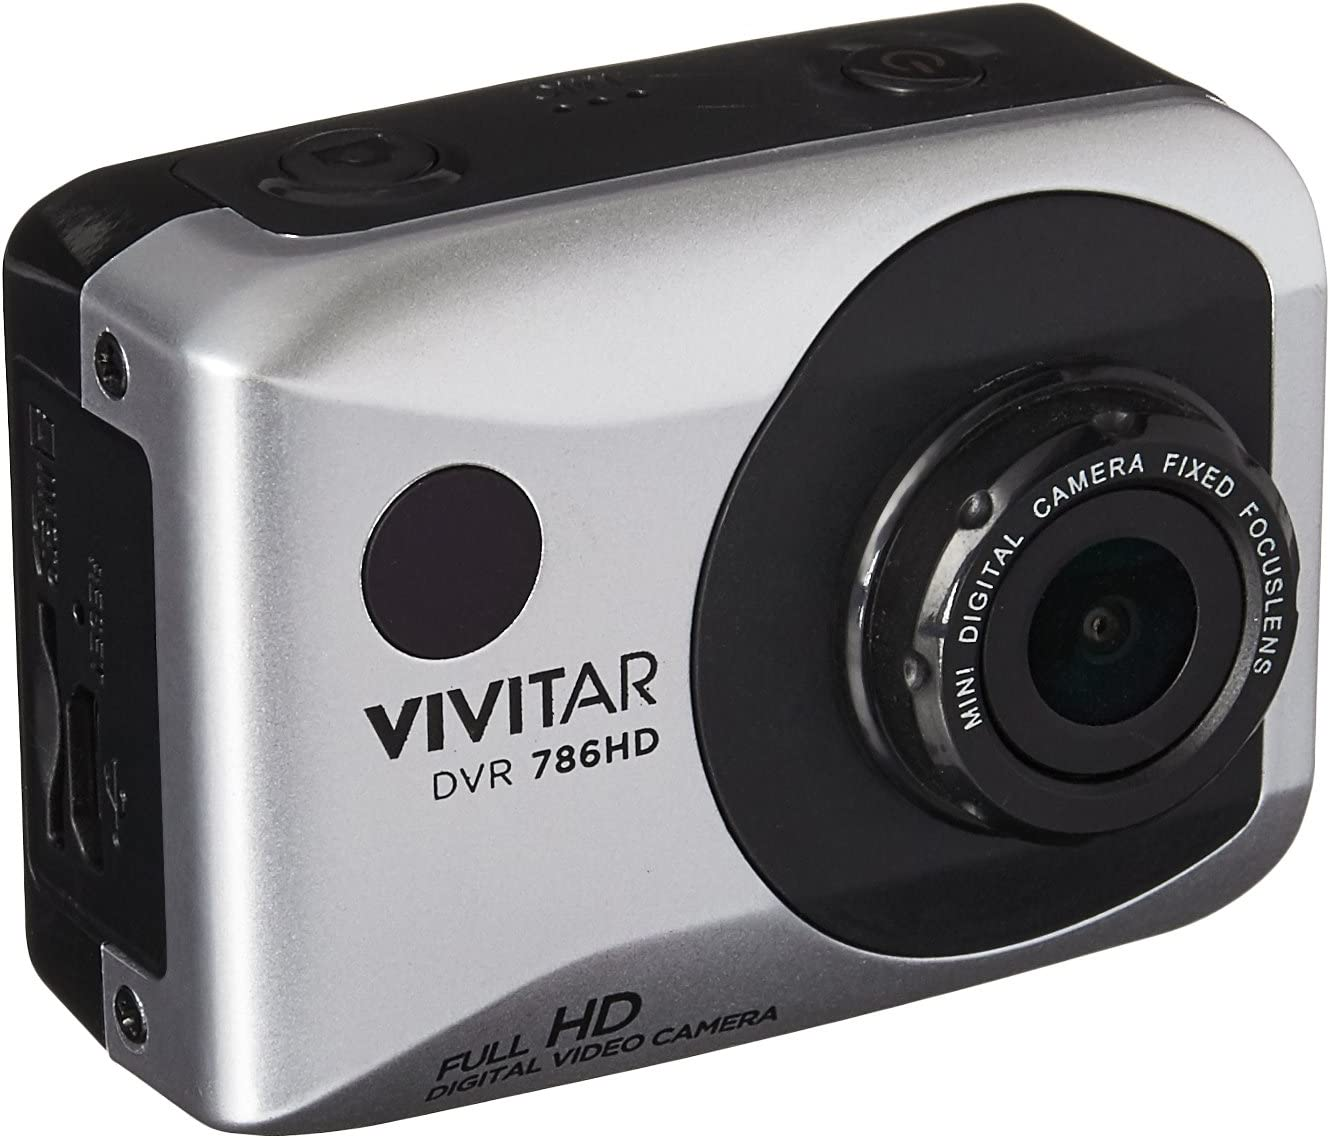 Vivitar DVR786HD-SIL DVR 786HD ActionCam